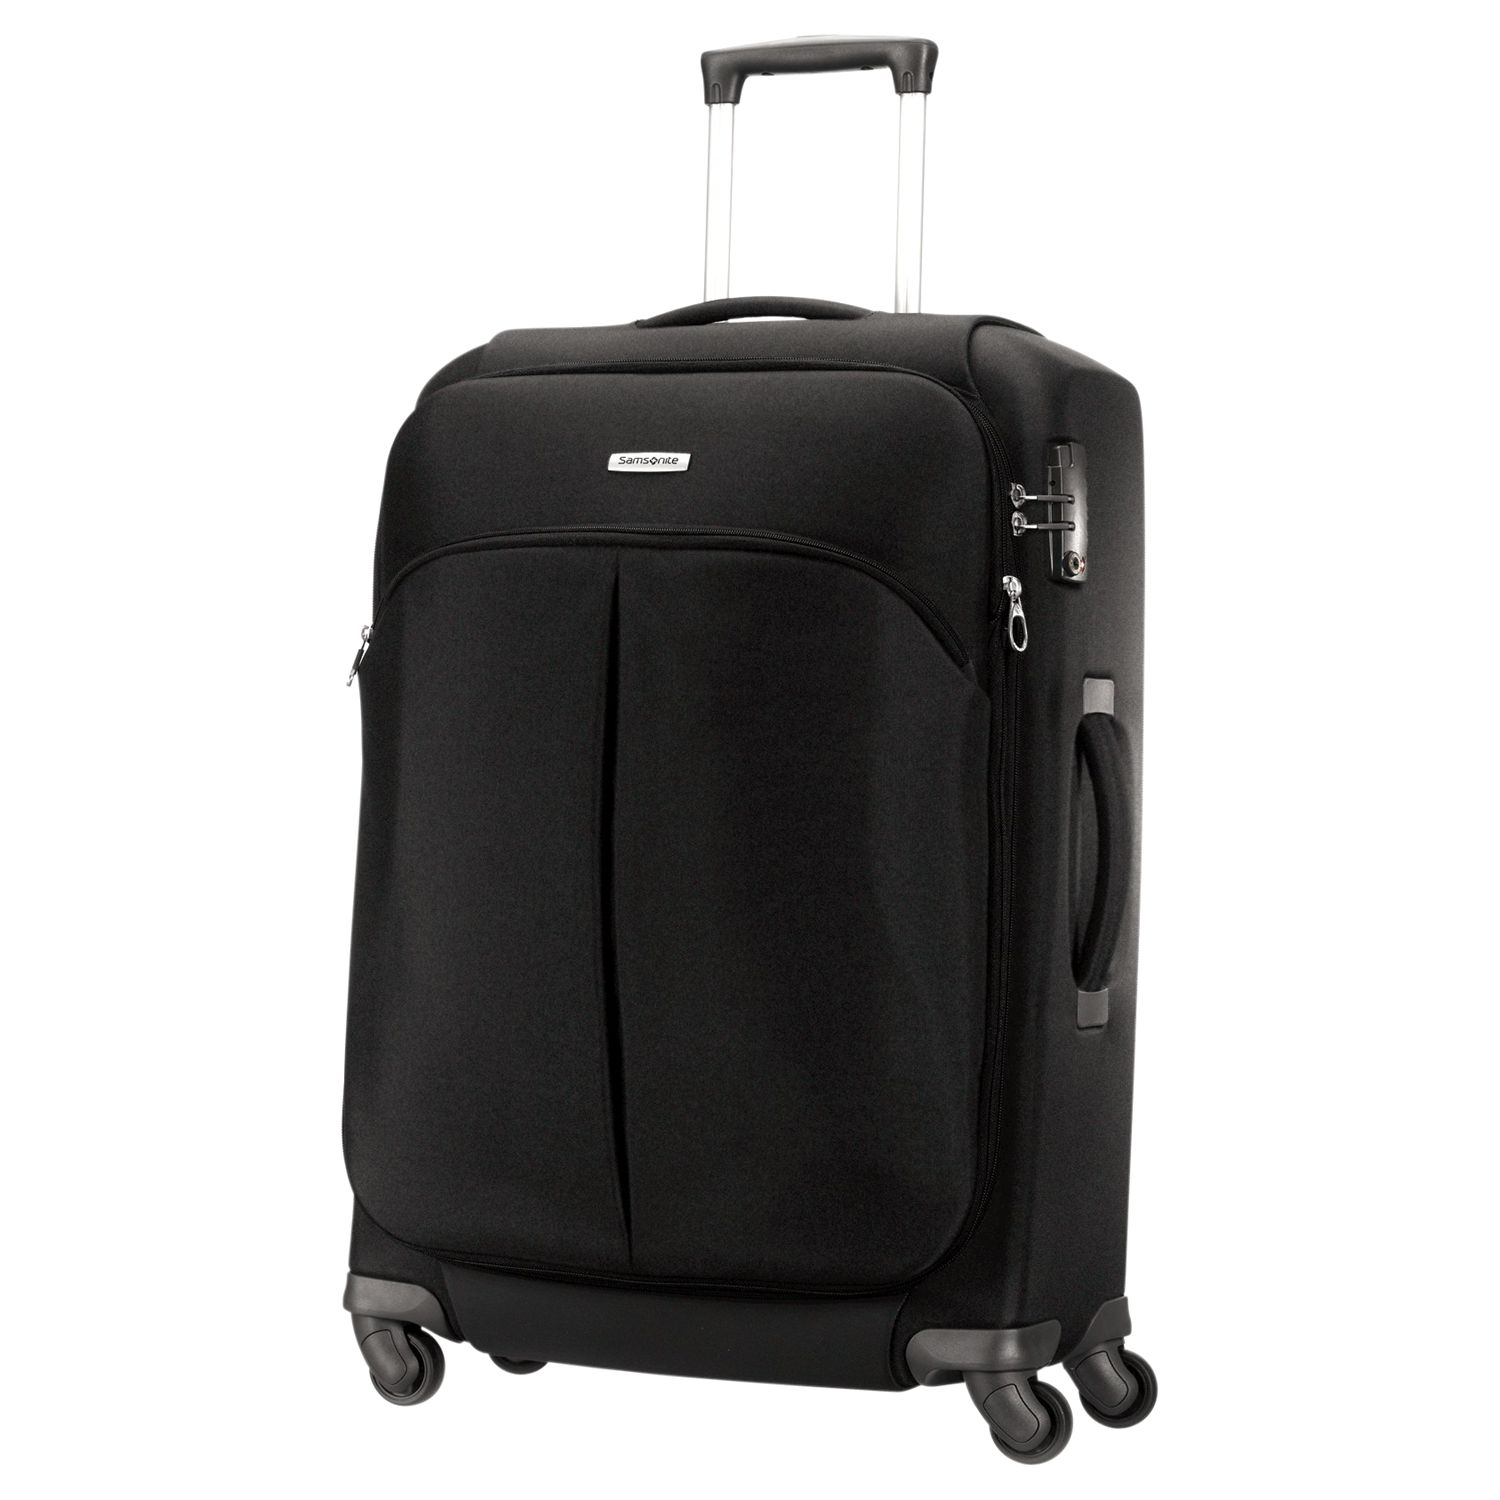 Samsonite Cordoba Duo 4-Wheel Hybrid Suitcase, Graphite